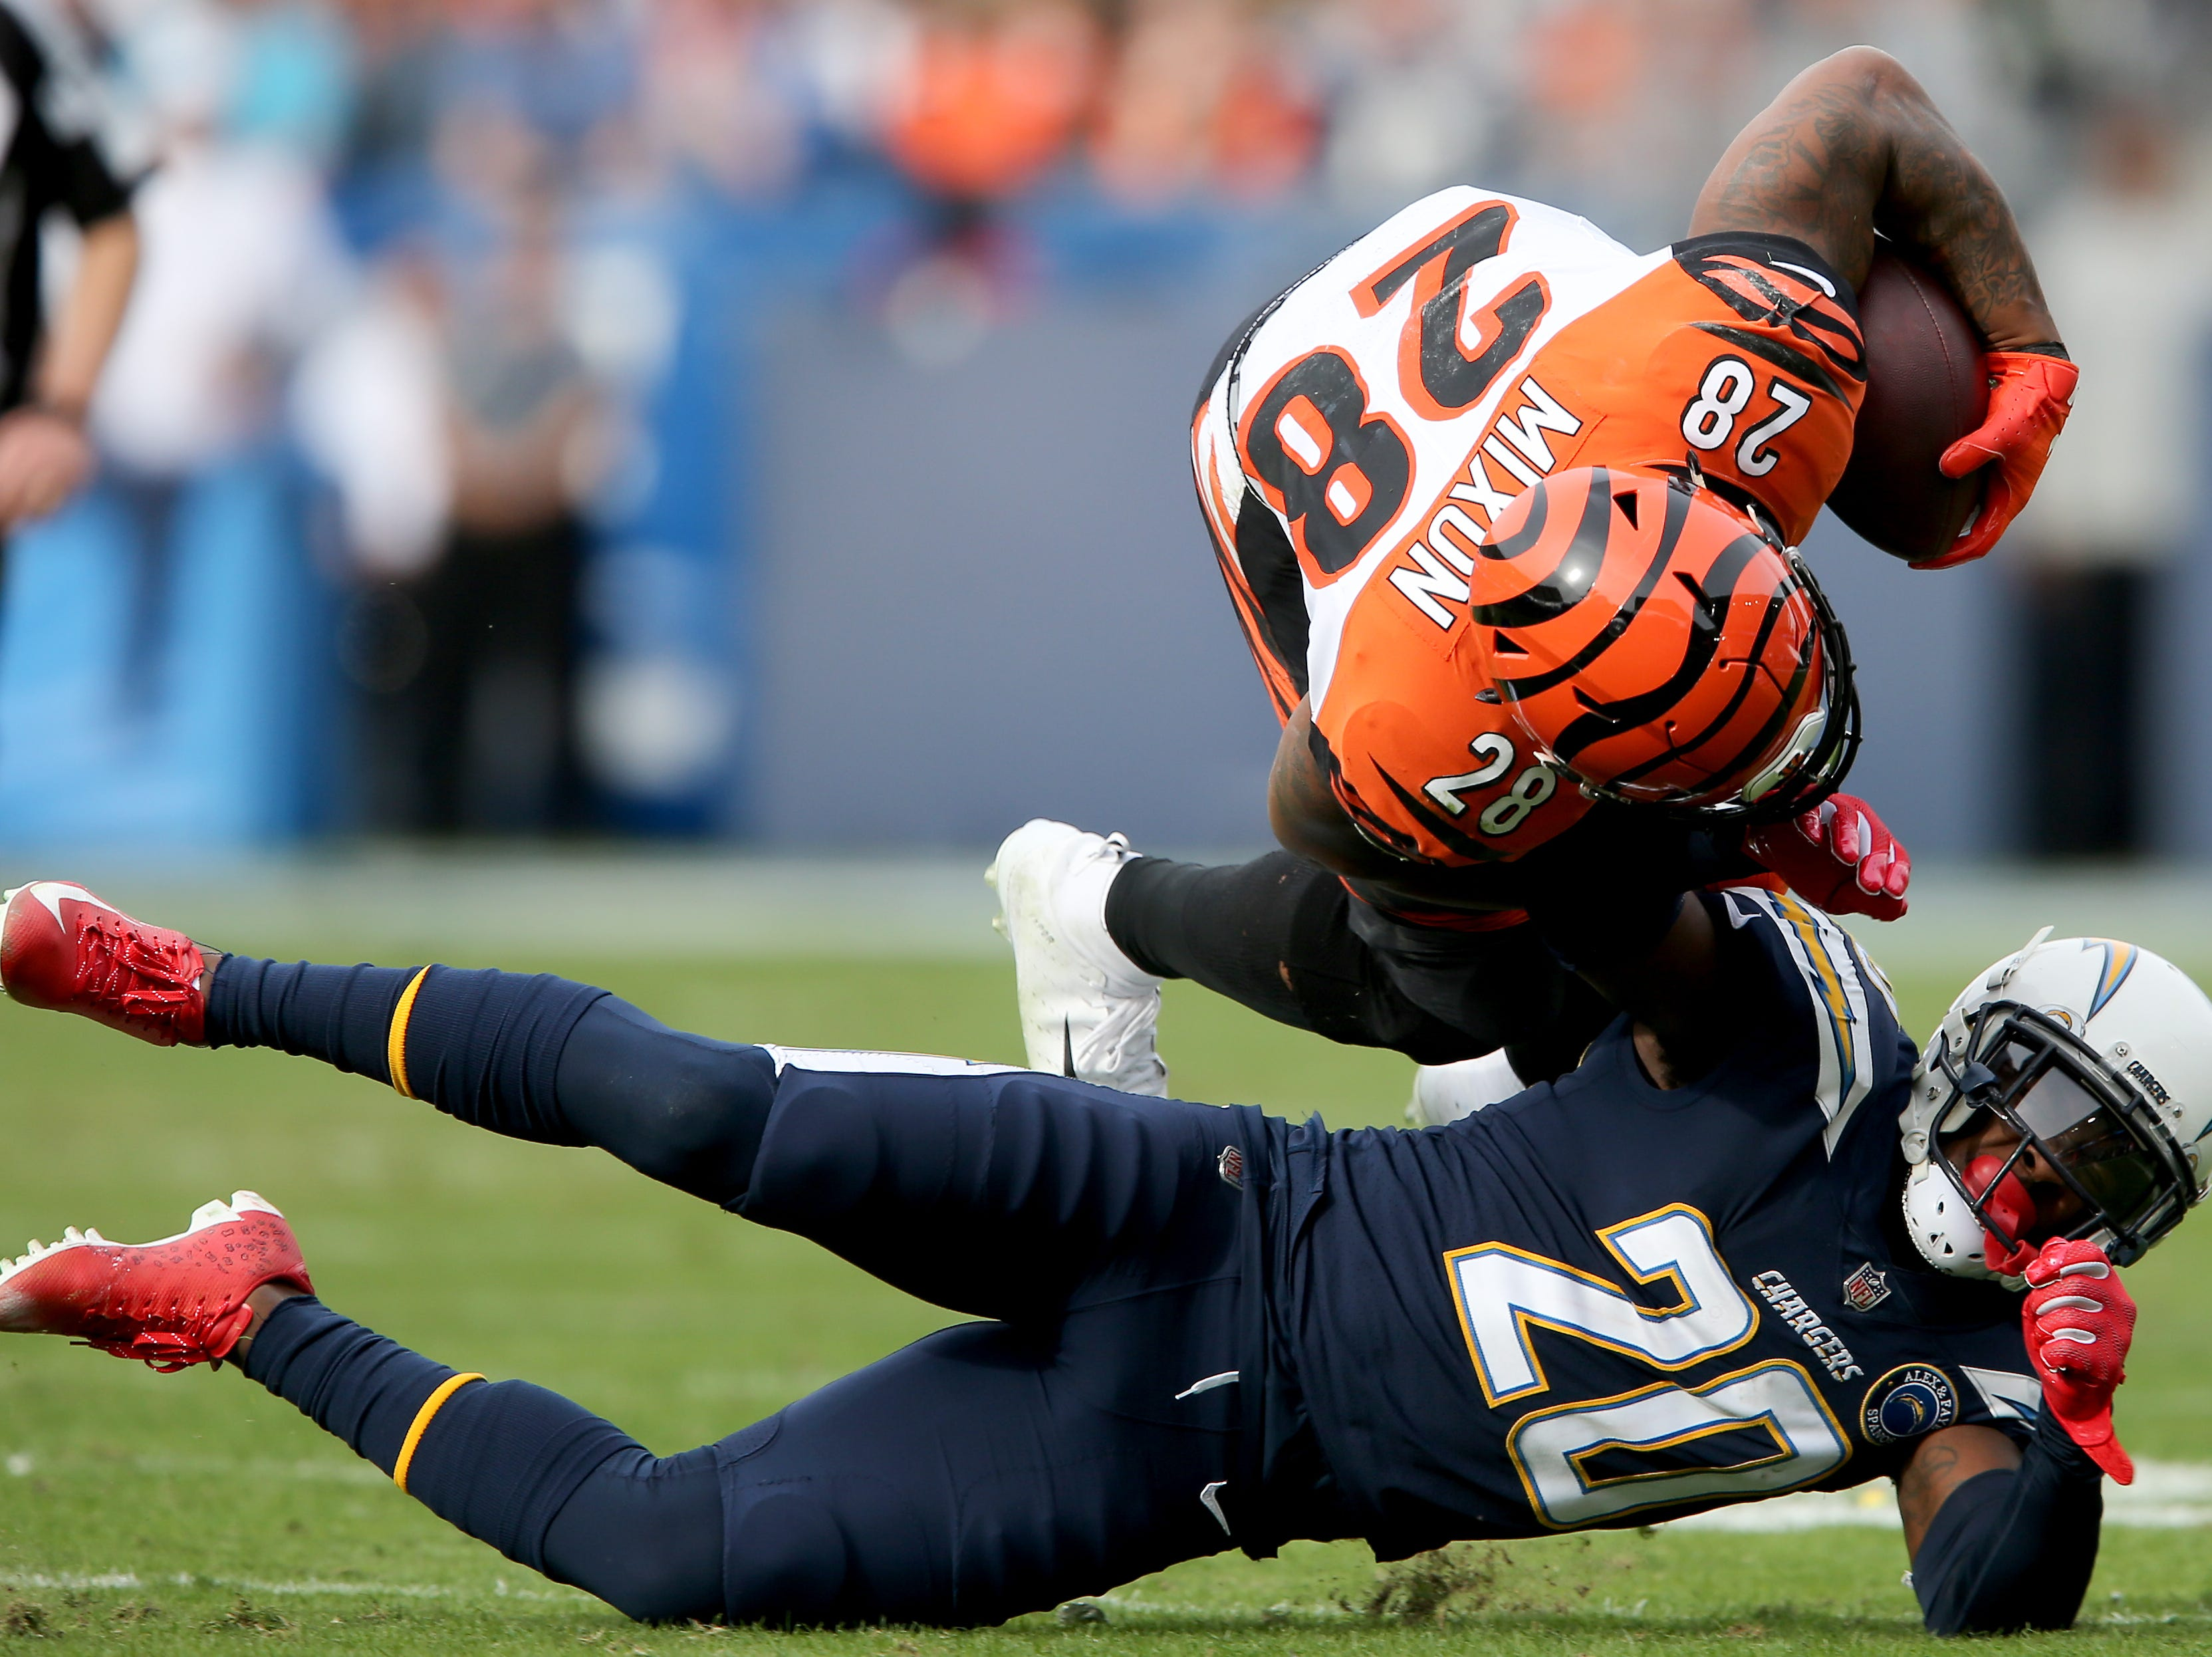 Cincinnati Bengals running back Joe Mixon (28) is upended by Los Angeles Chargers defensive back Desmond King (20) on a run in the first quarter of a Week 14 NFL football game, Sunday, Dec. 9, 2018, at StubHub Center in Carson, California.